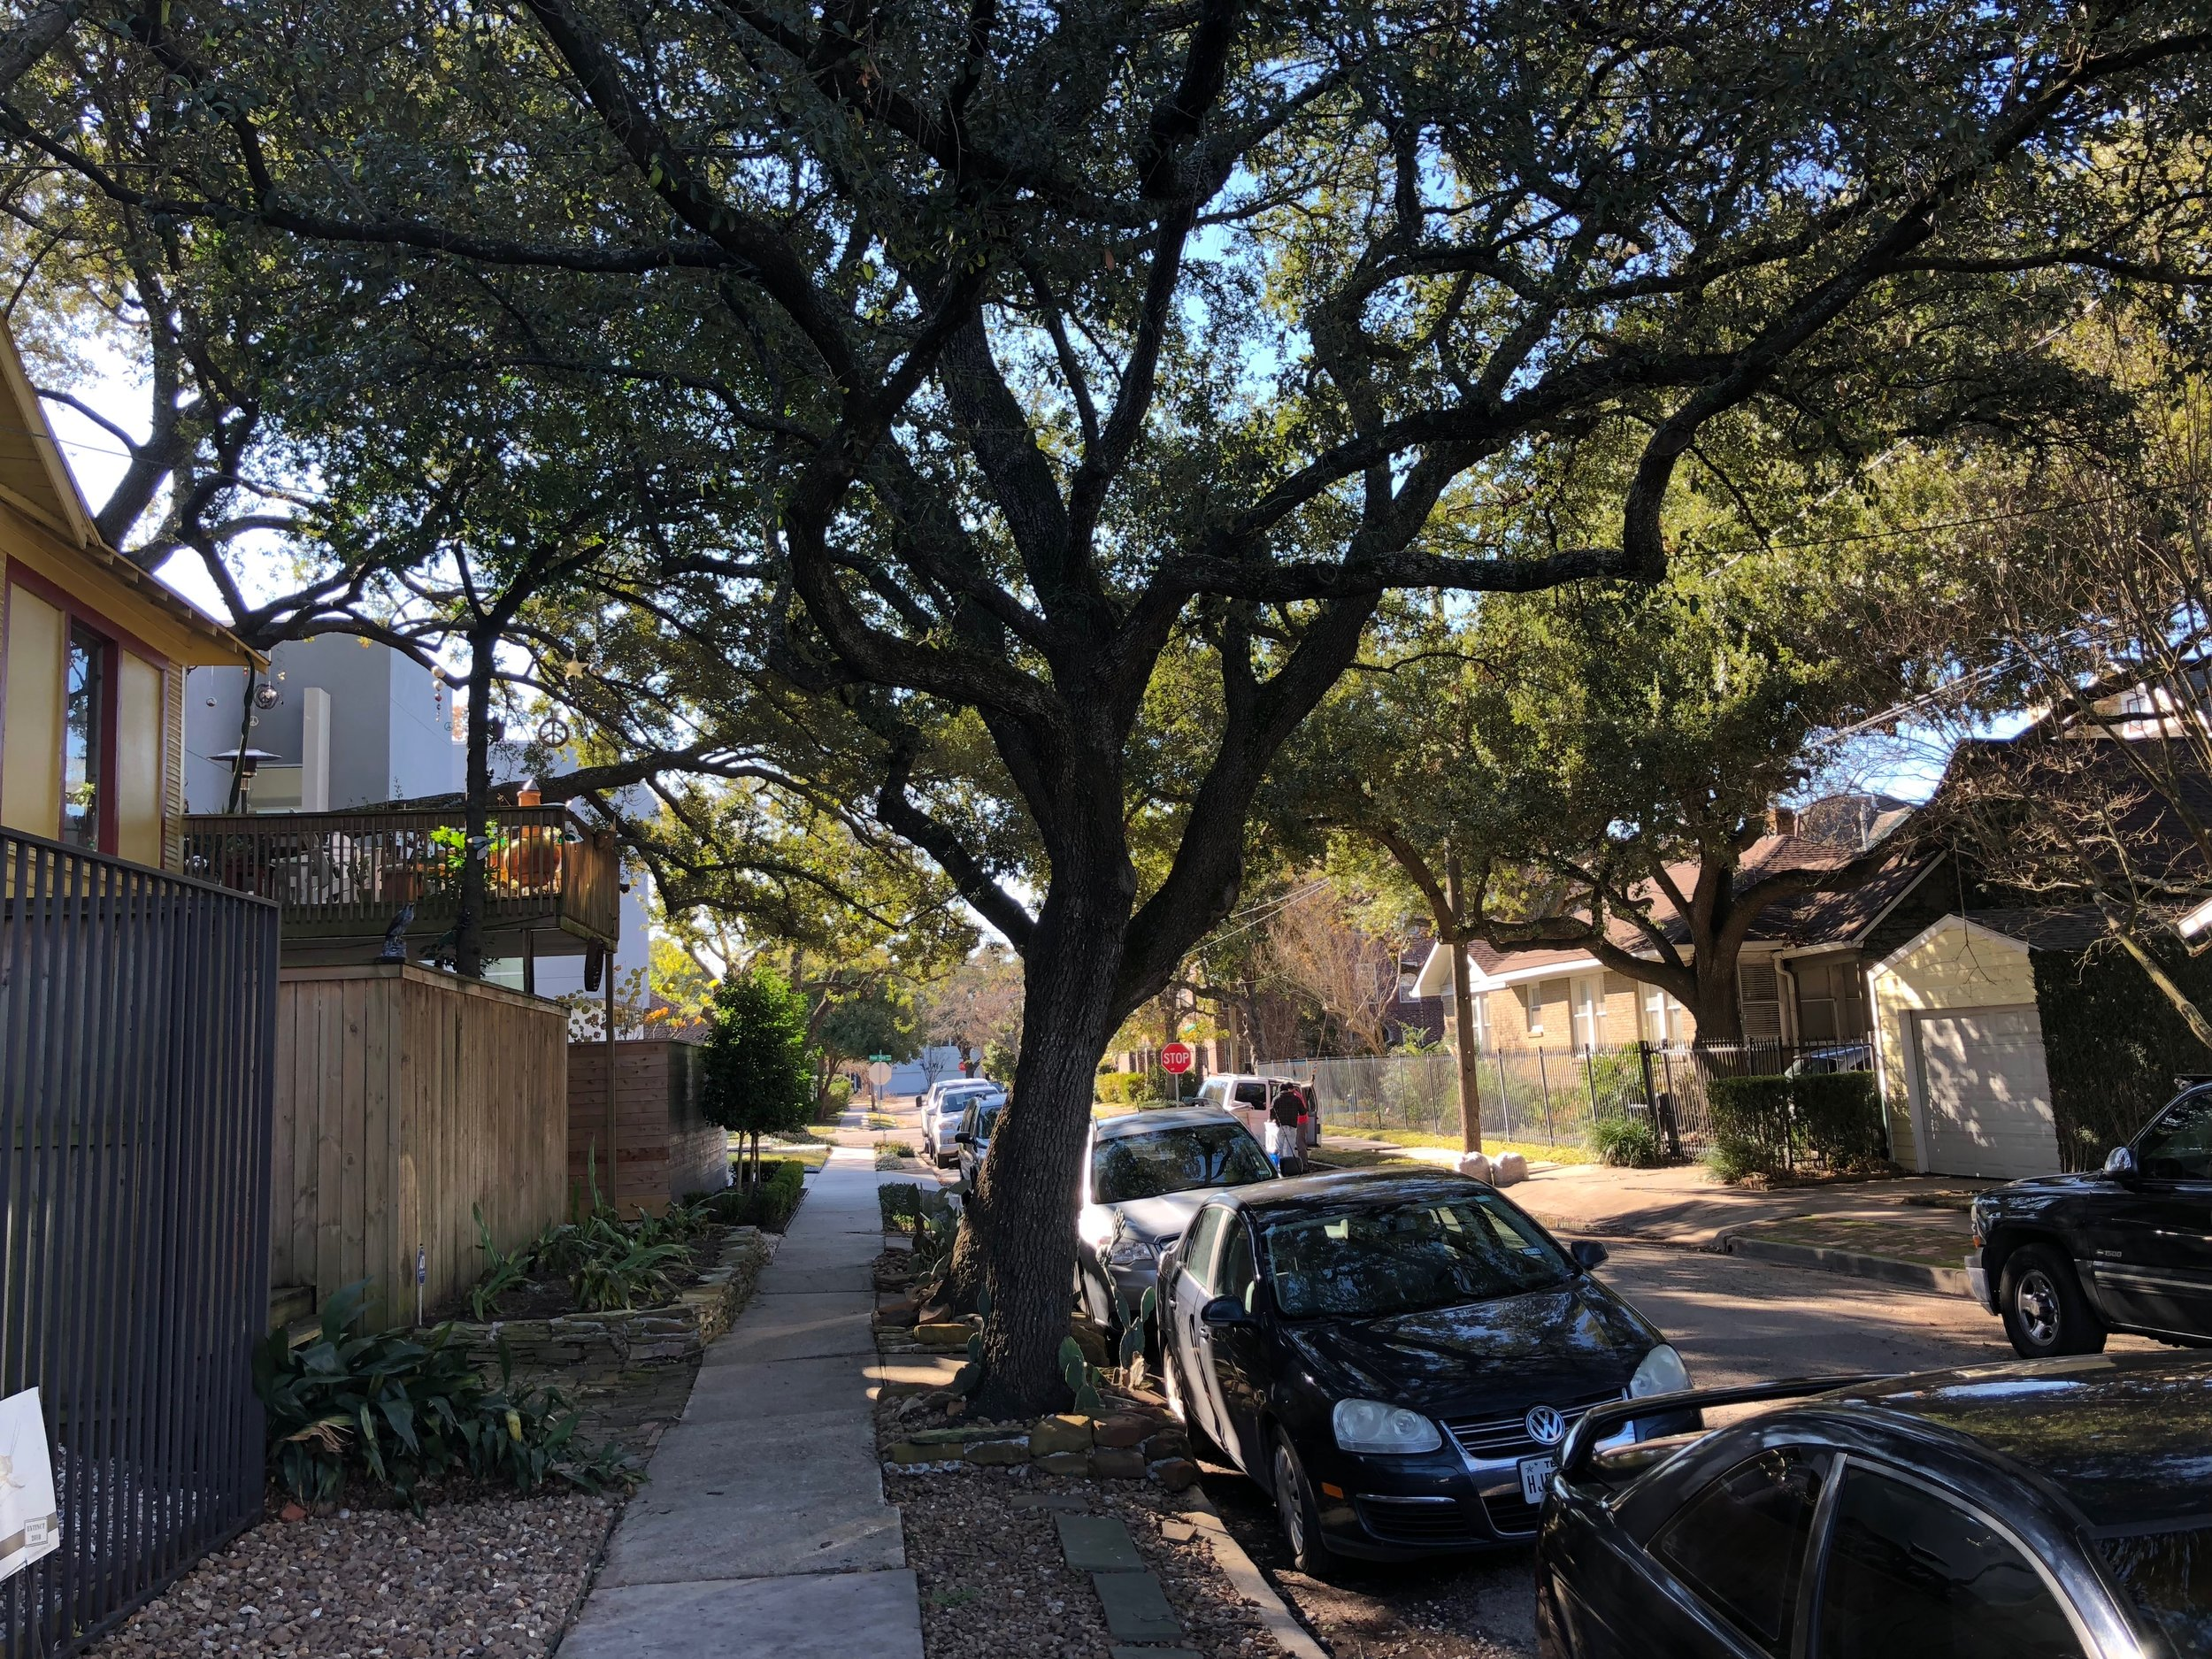 Quiet tree-lined streets